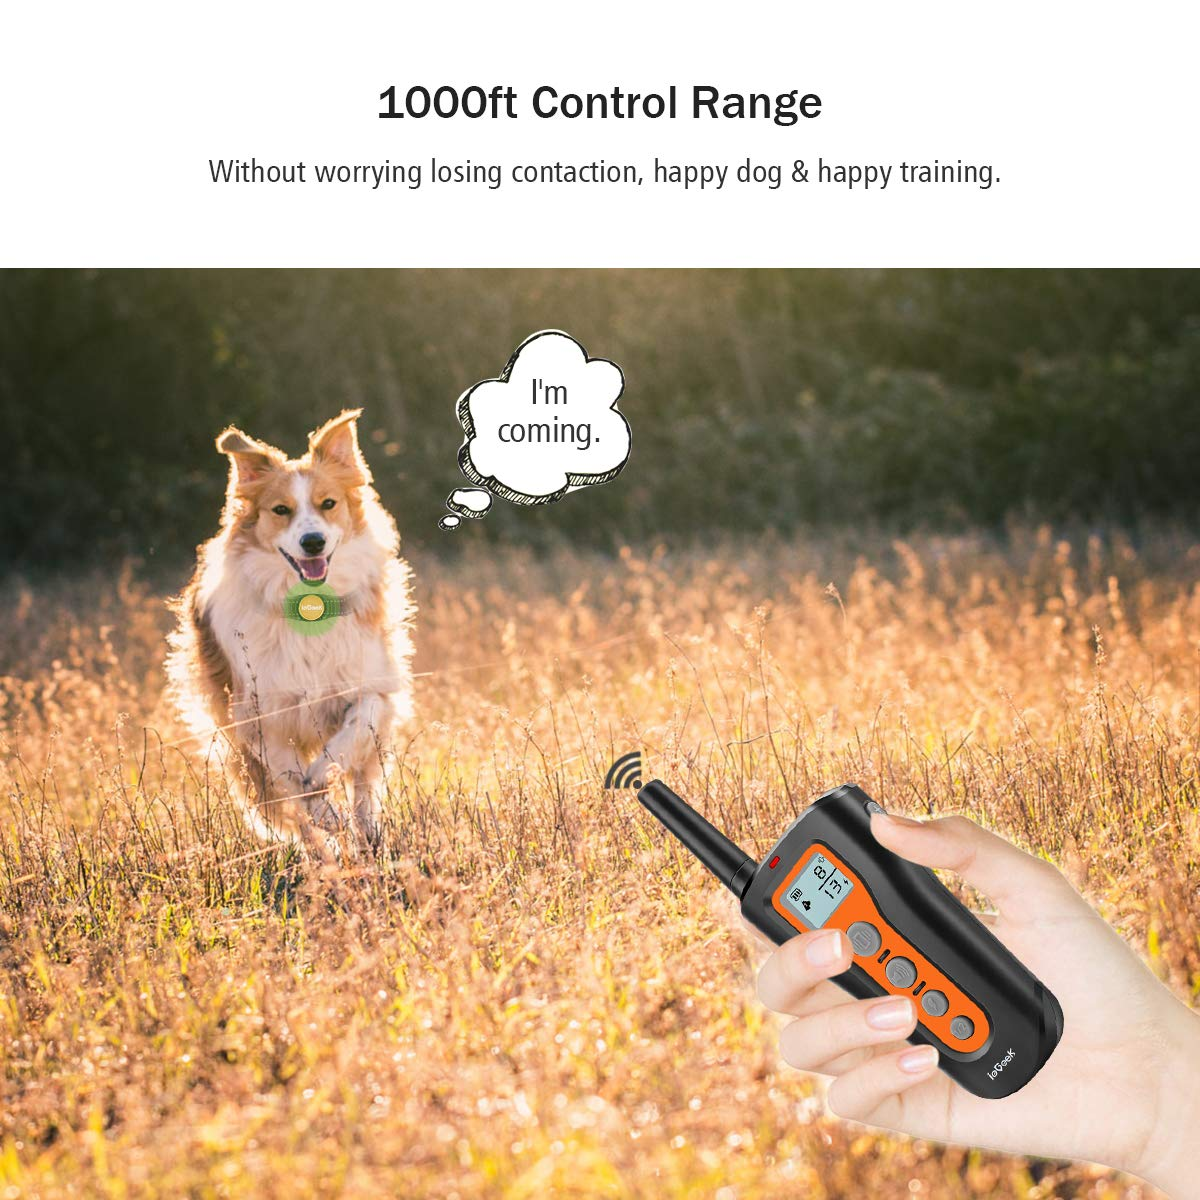 ieGeek Dog Training Collar Remote Shock Collars Up to 1000ft, Upgraded Rechargeable Waterproof Electric Professional Dog E-Collar with Beep, Vibration and Shock for Small Medium Large Dogs